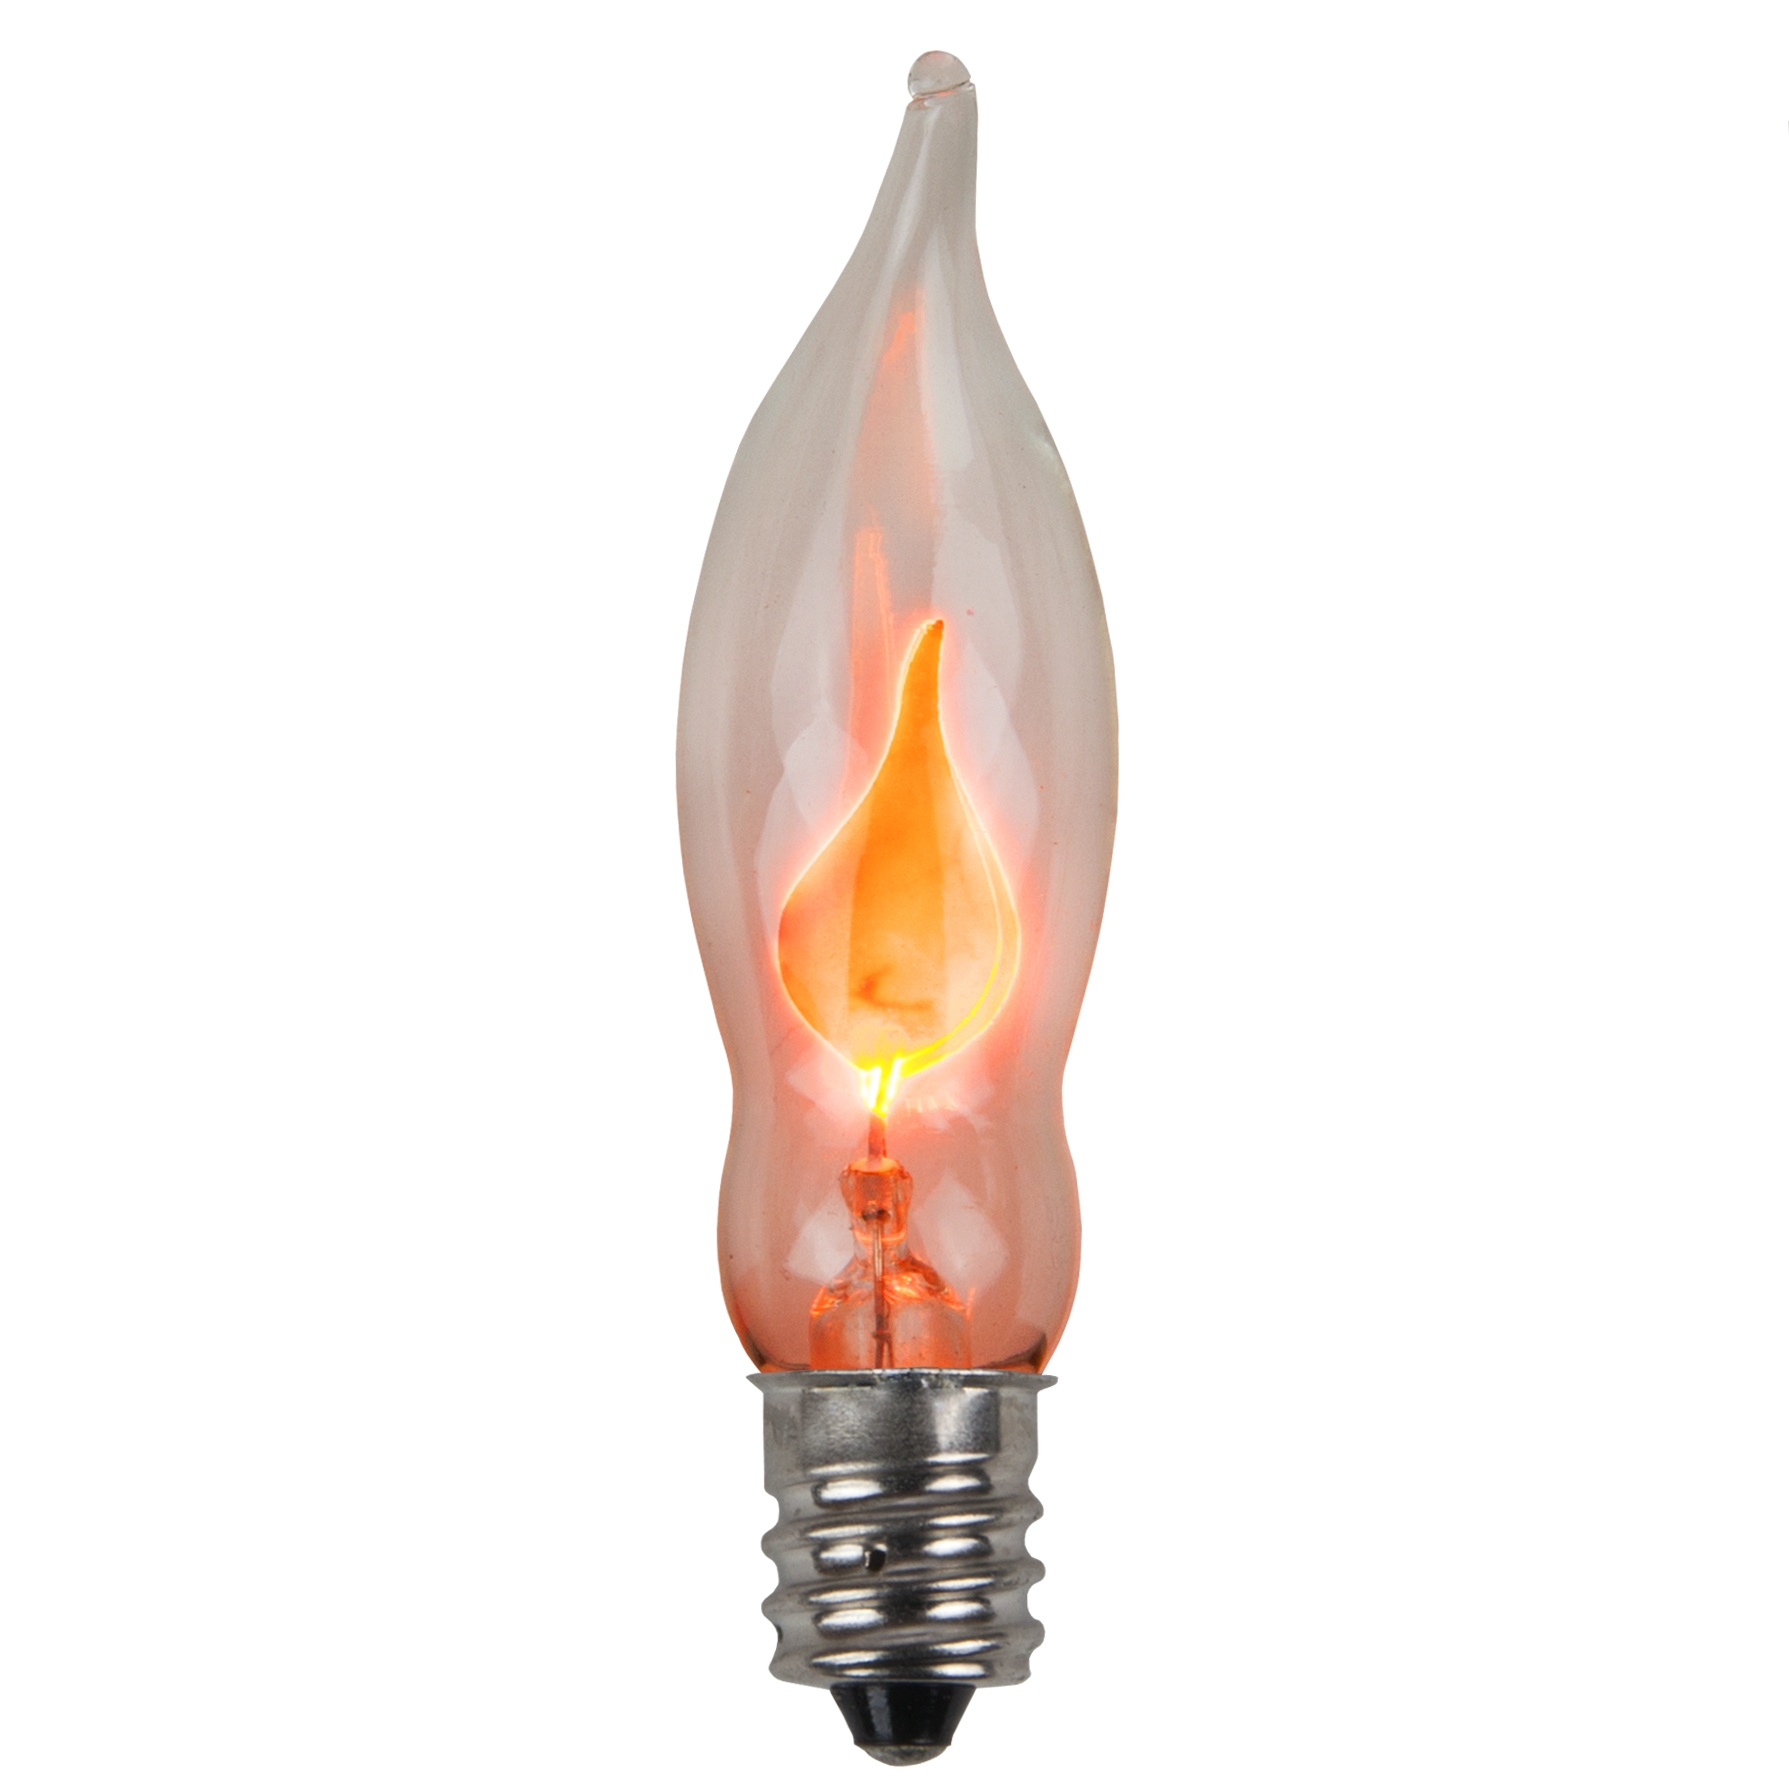 c7 light bulb orange flicker flame yard envy - Halloween Light Bulbs